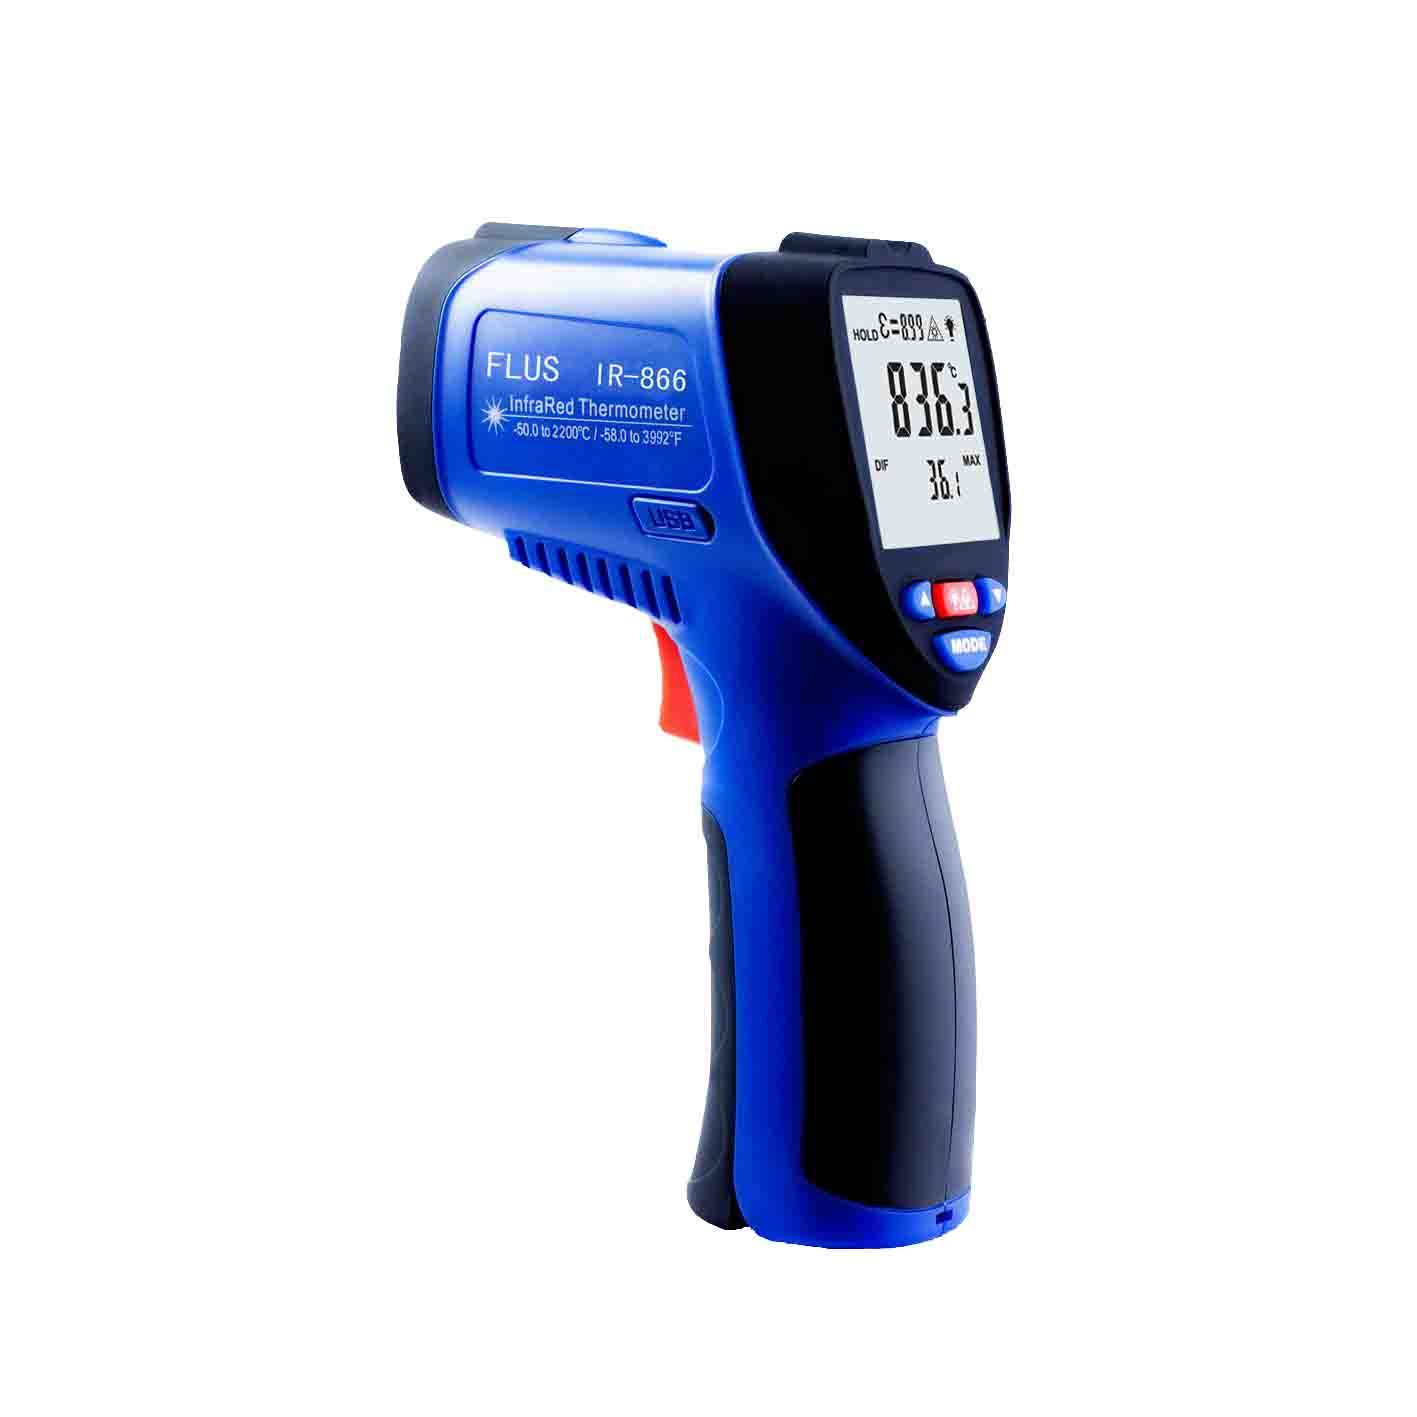 Esis Infra Red Temperature Ir Flus Pic Digital Thermometer Electronicslab 866 Infrared 50 To 2250 501